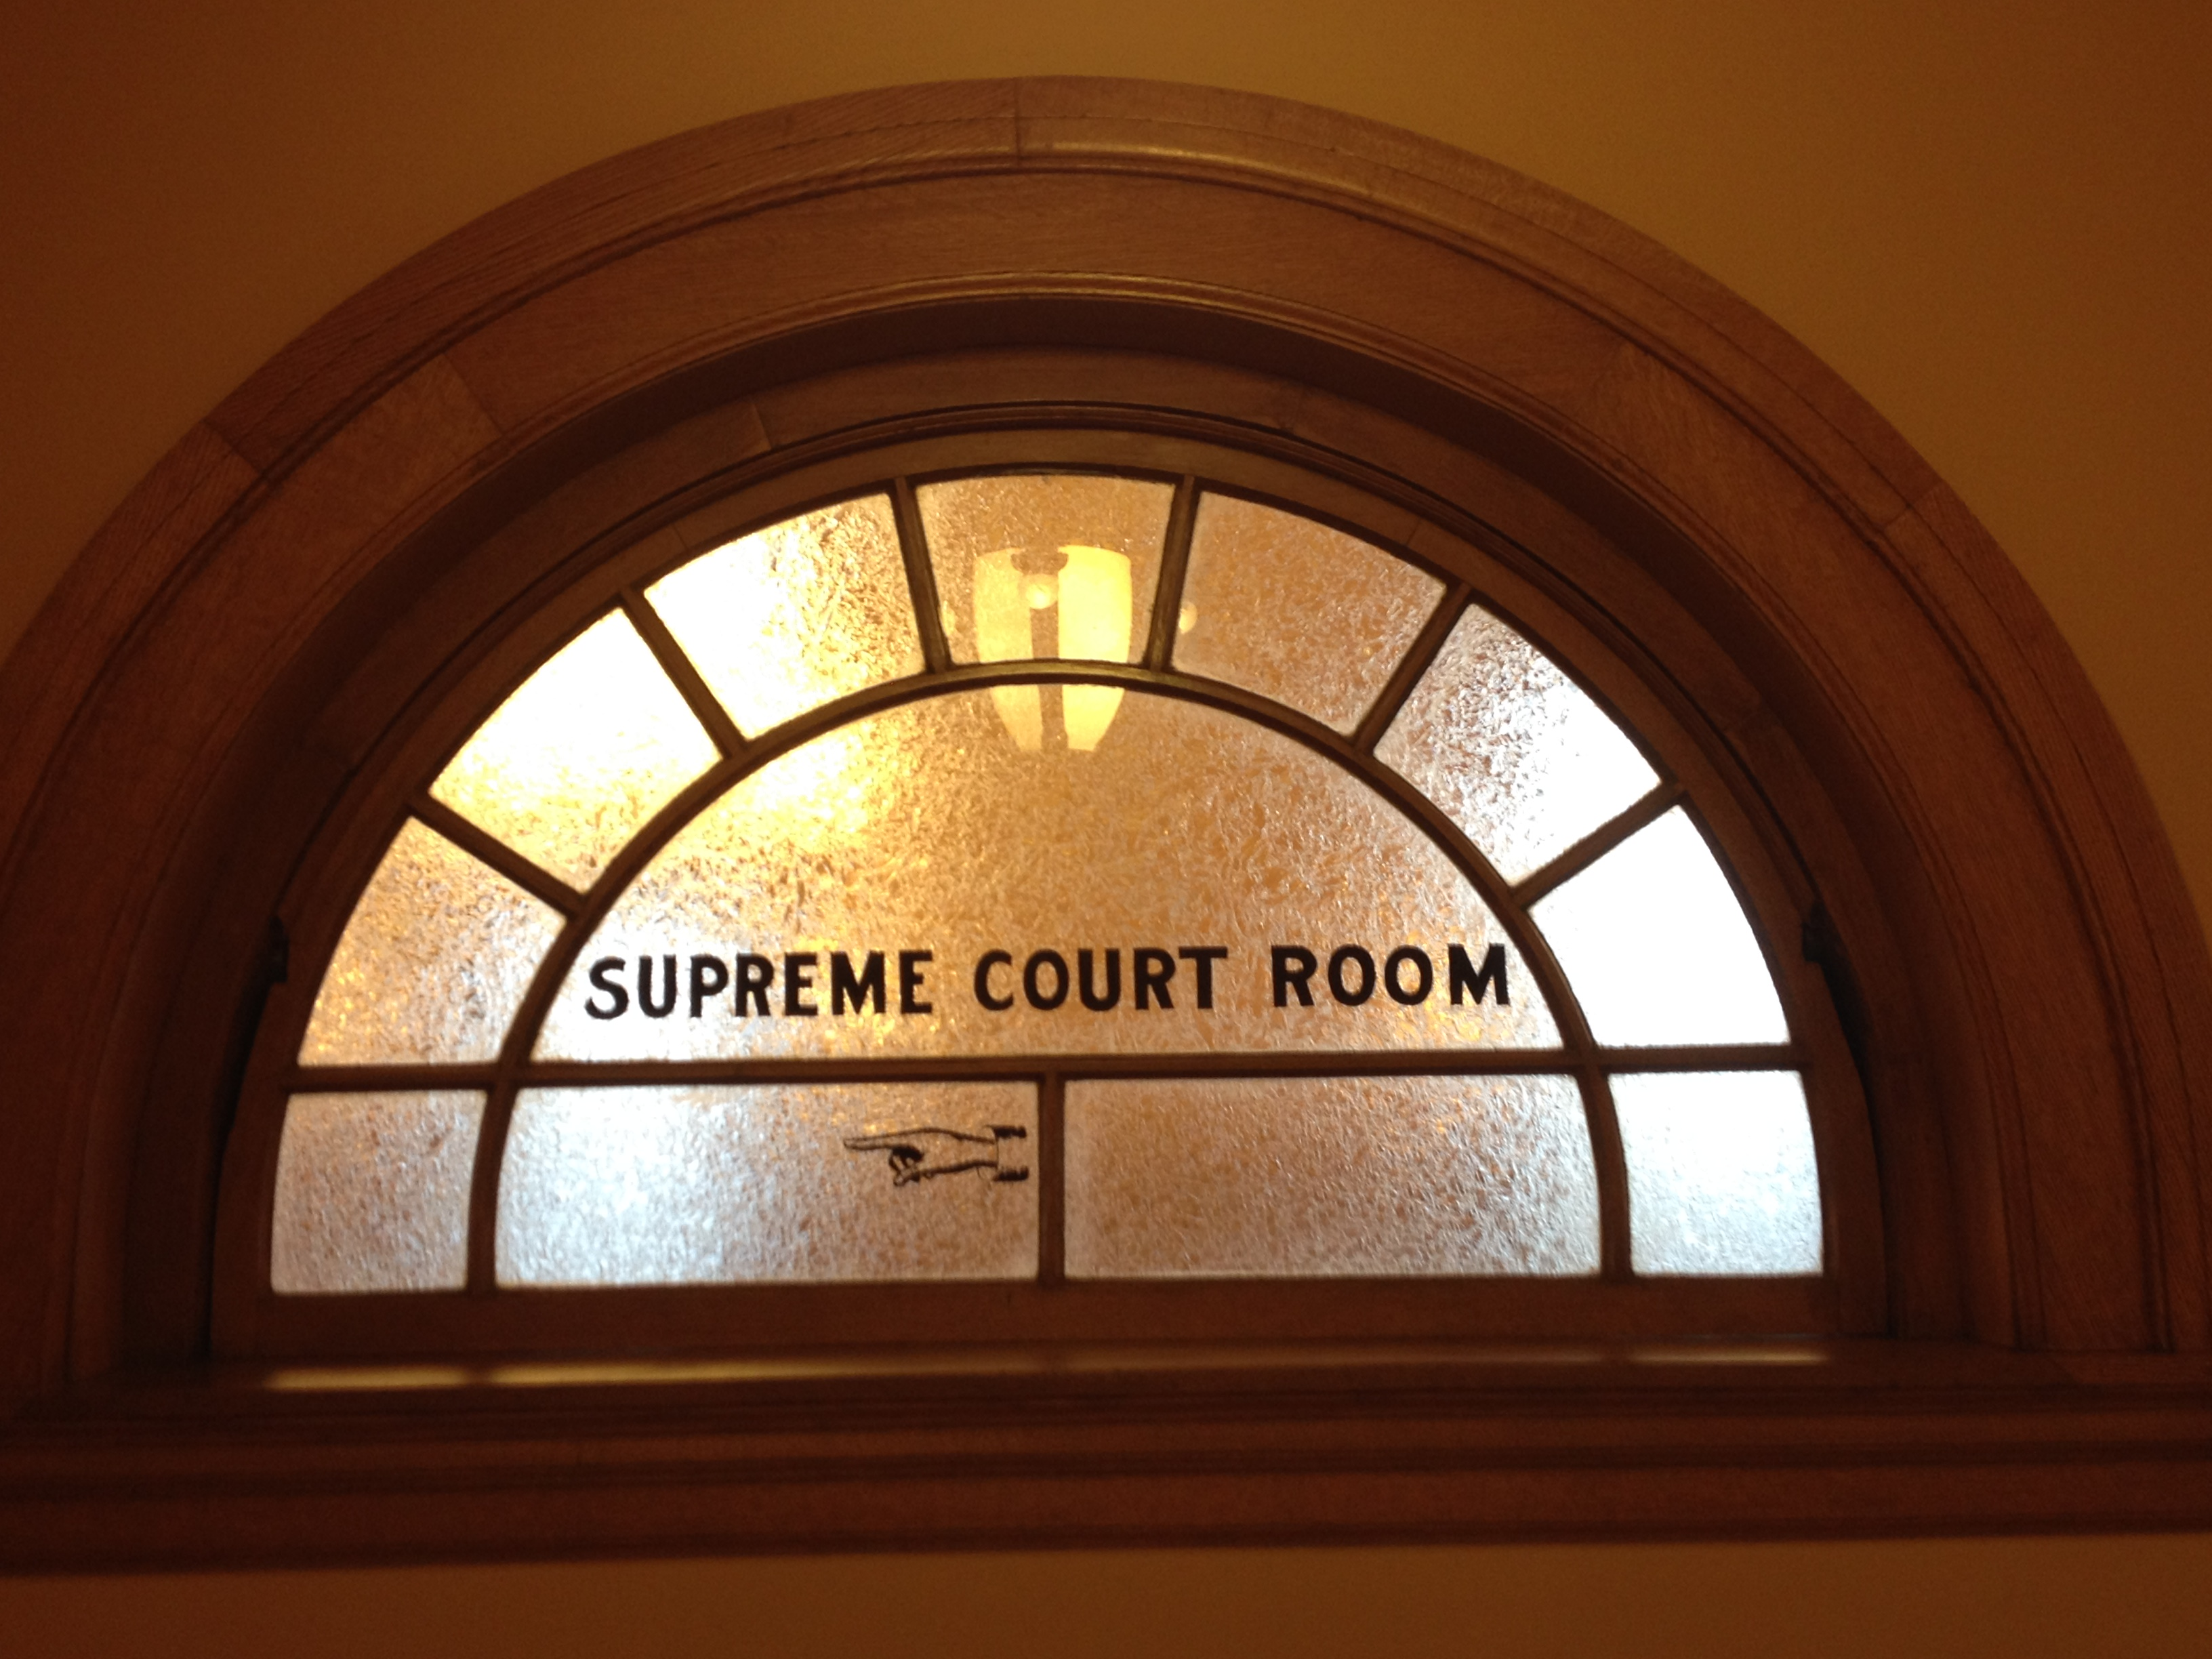 Window to the Old Supreme Court Room in the Kansas Statehouse (Photo by J. Schafer)